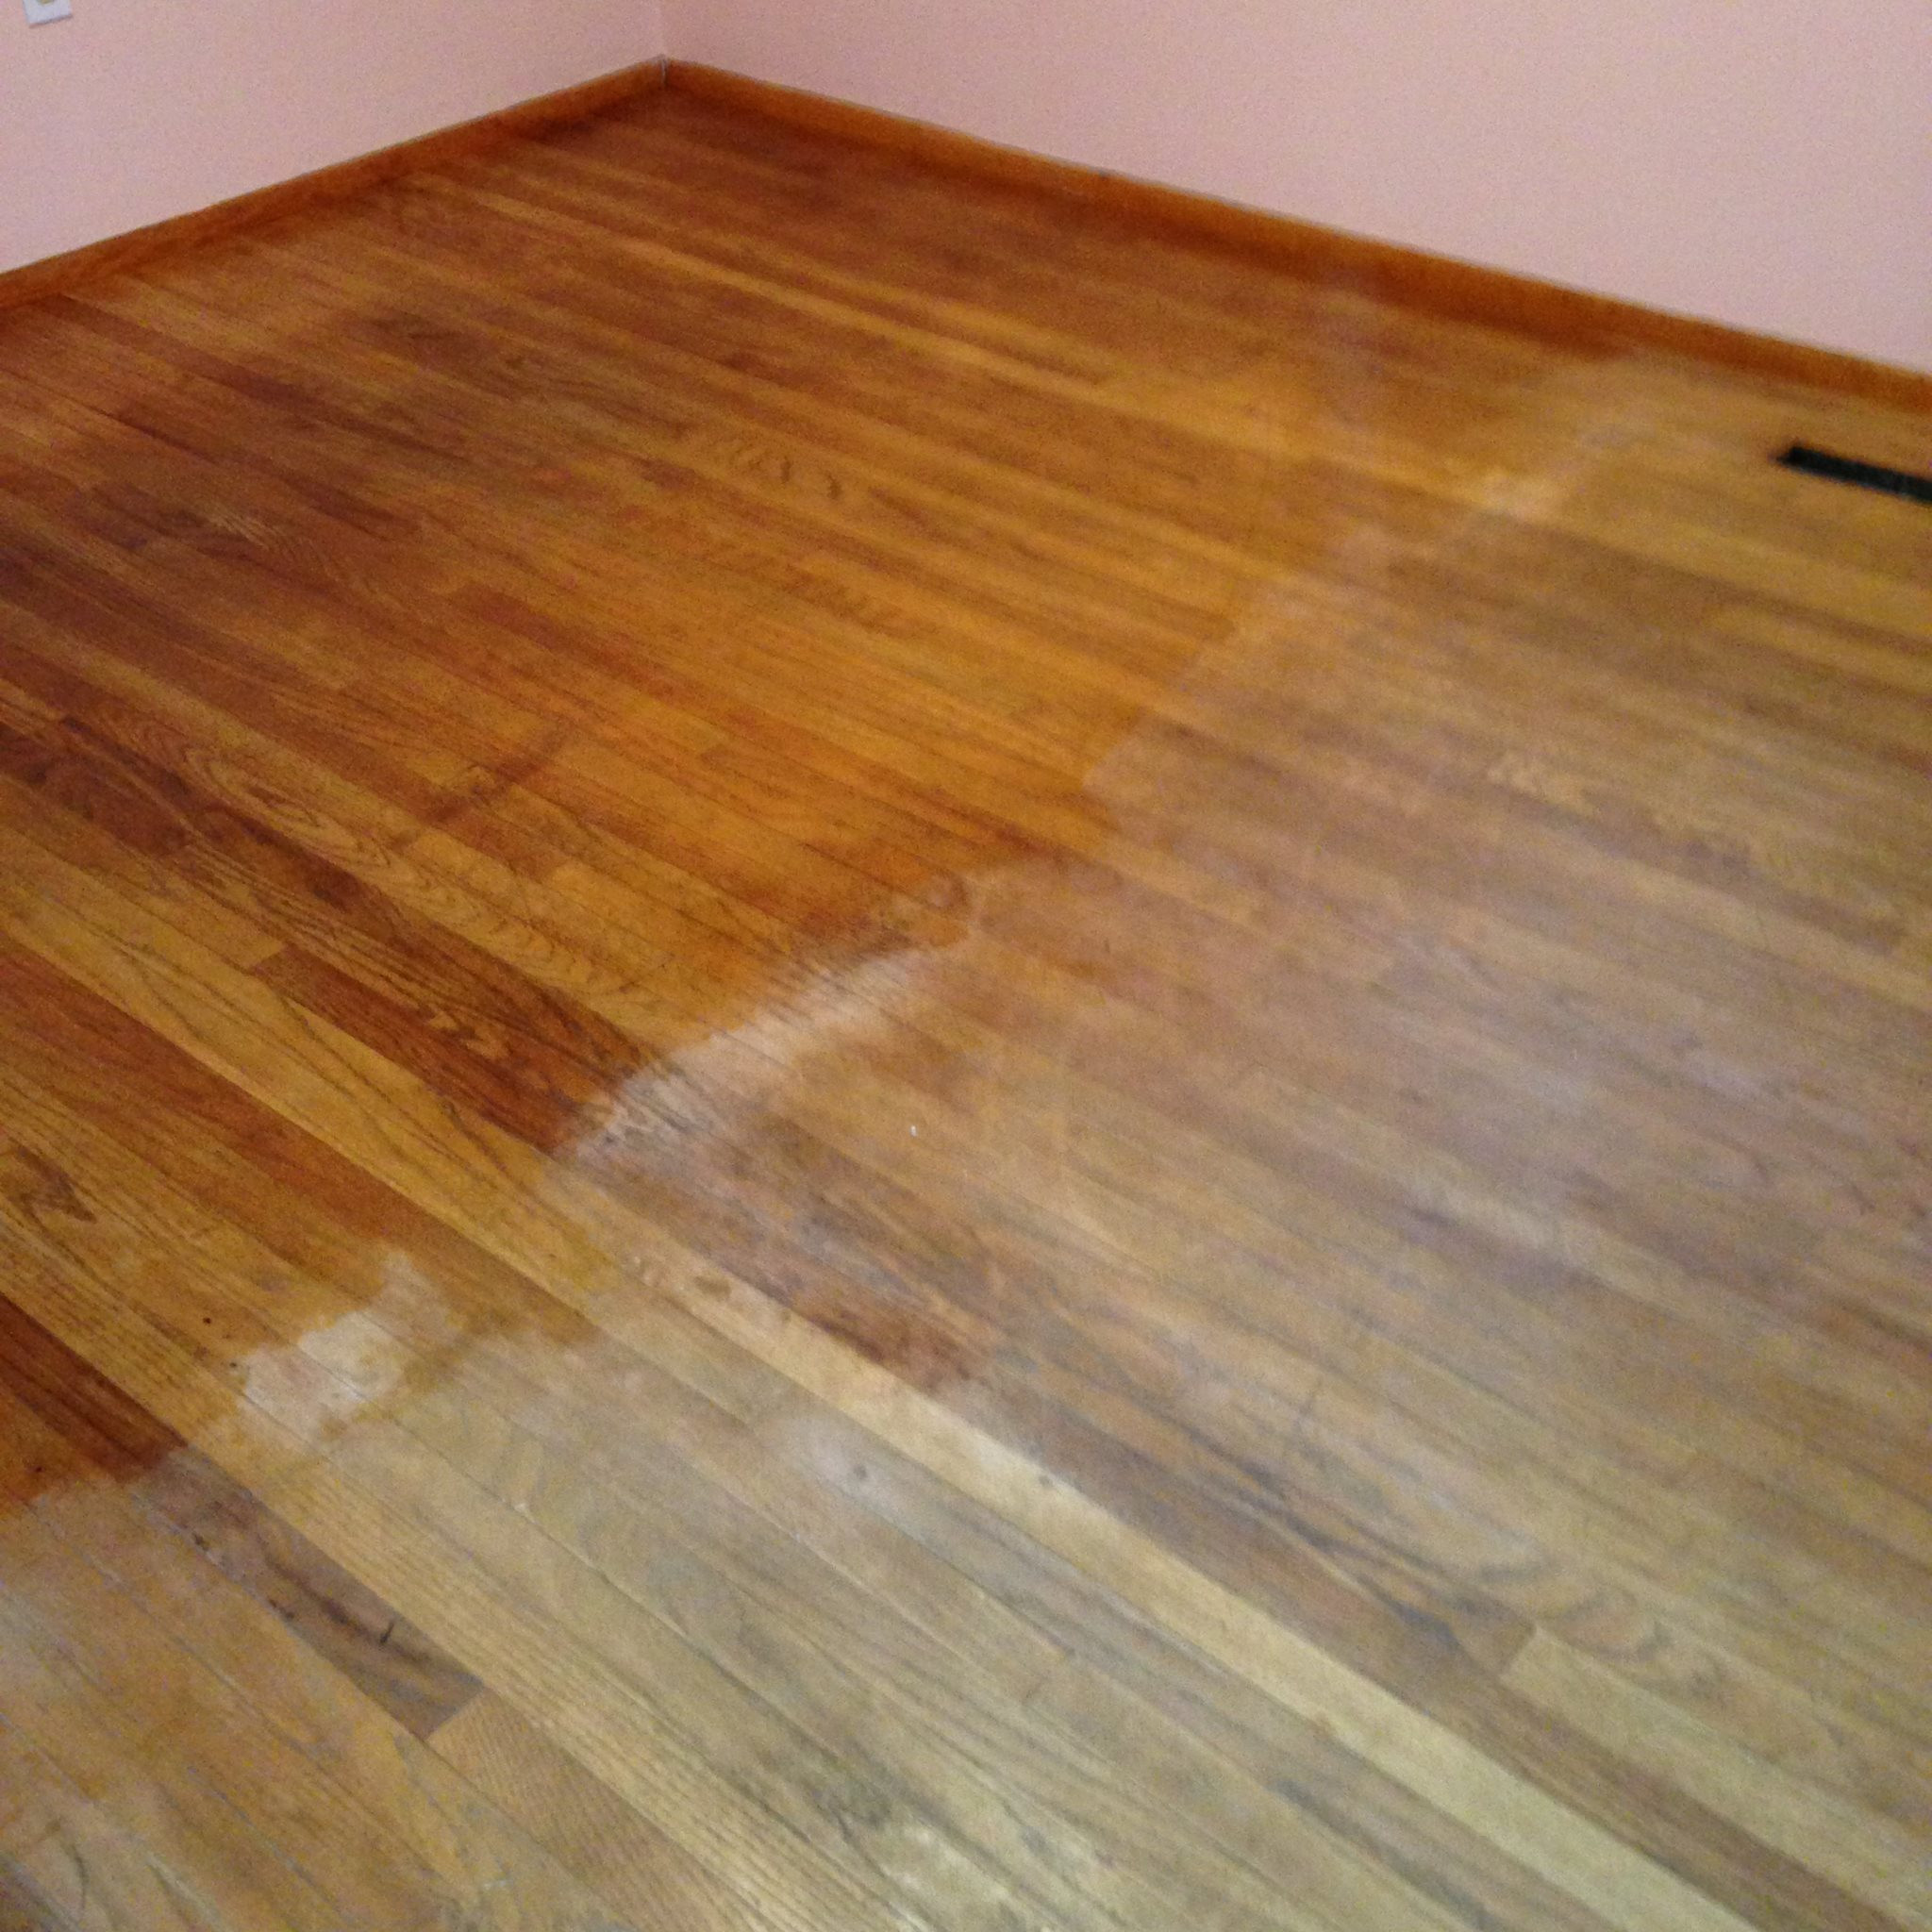 how to finish hardwood floors yourself video of 15 wood floor hacks every homeowner needs to know with regard to wood floor hacks 15